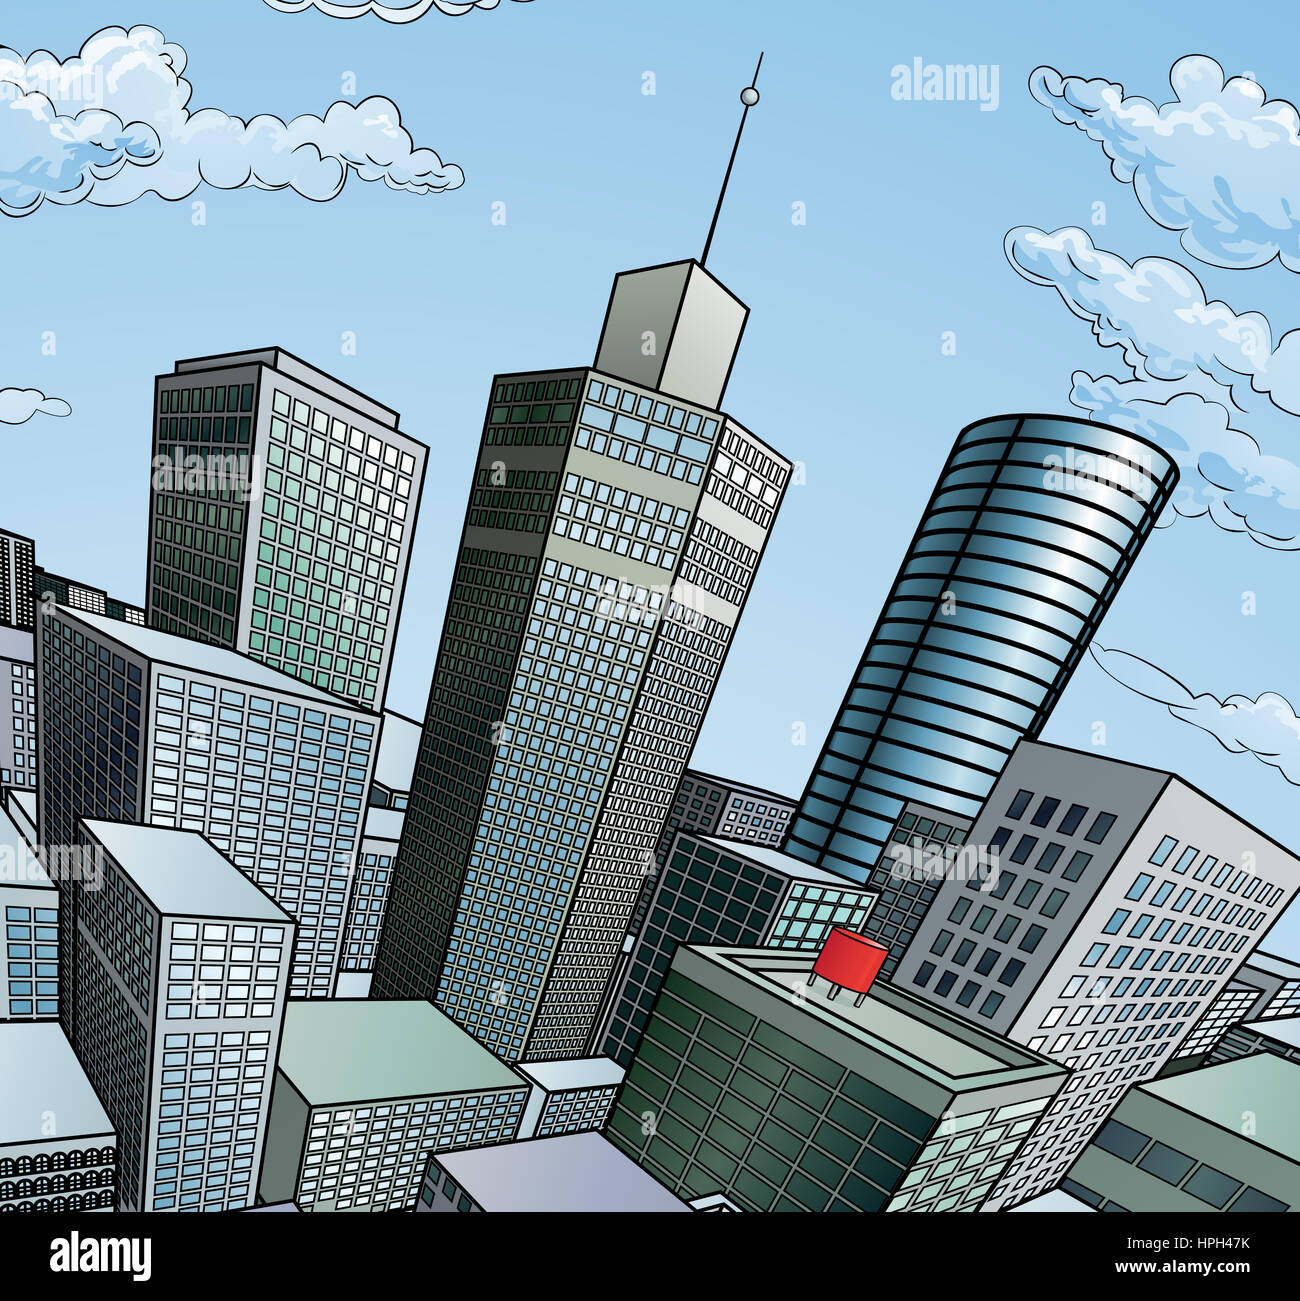 Design Your Apartment A City Buildings Cartoon Pop Art Comic Book Style